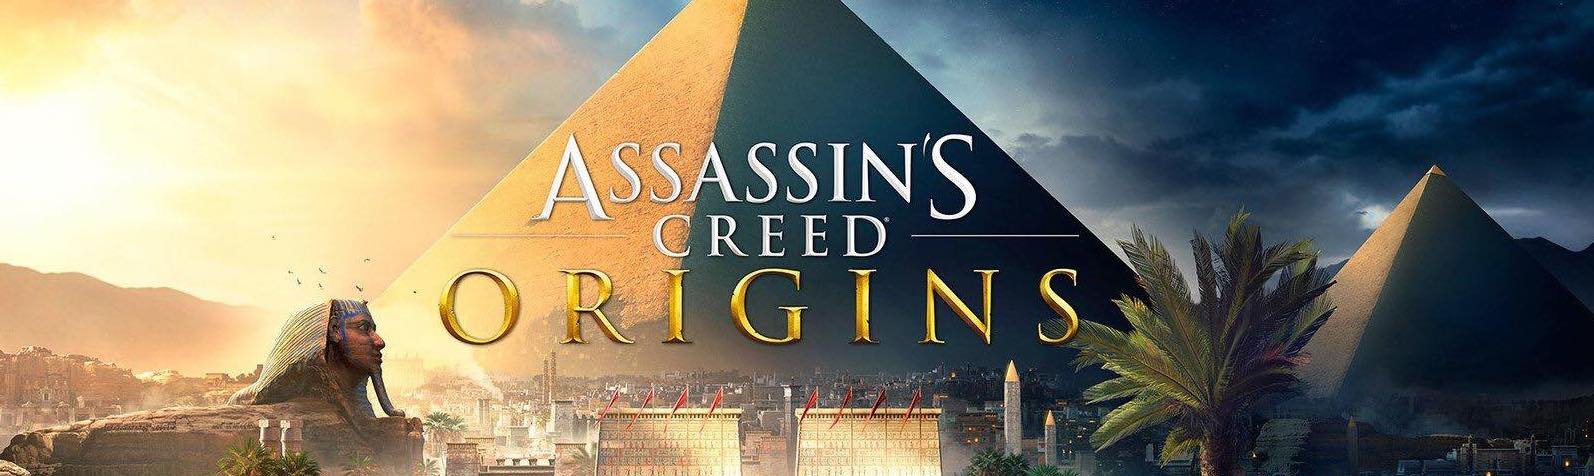 Assassin's Creed Origins Patch 1.20 Deploying Tomorrow!